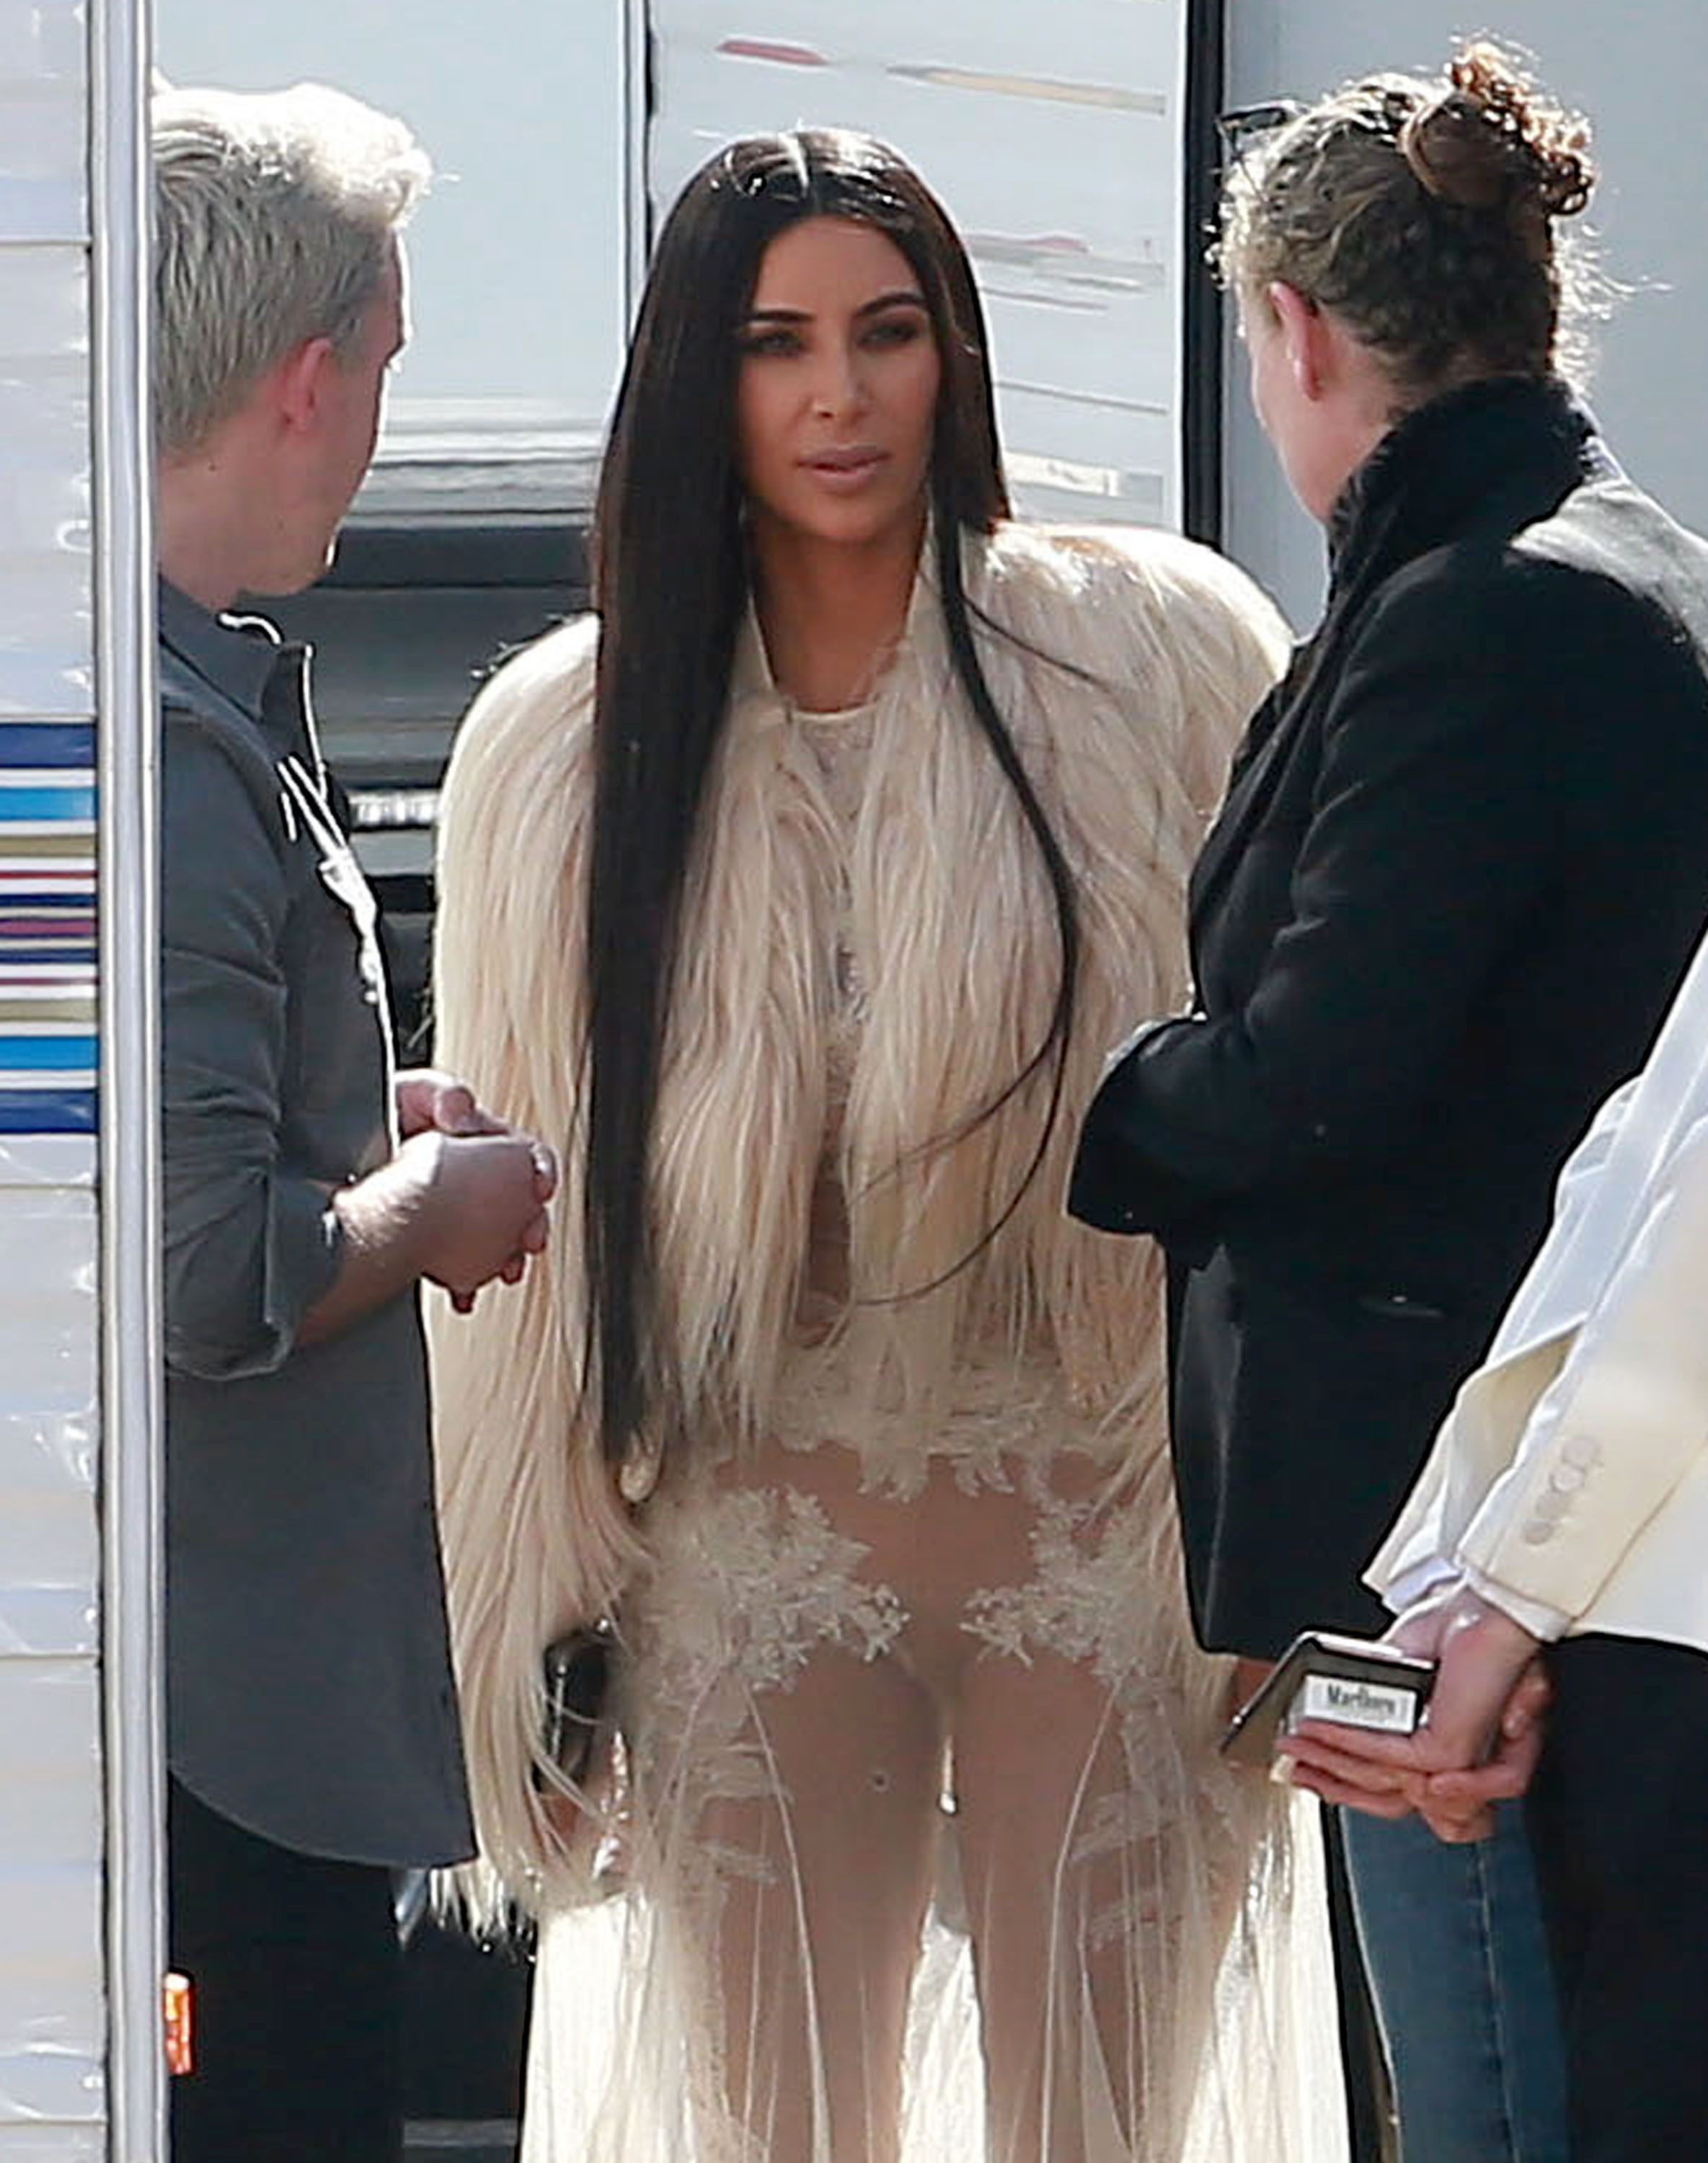 Kim Kardashian Among Other Celebrities Makes Her Ocean's Eight Cameo In a Sheer Lace Gown